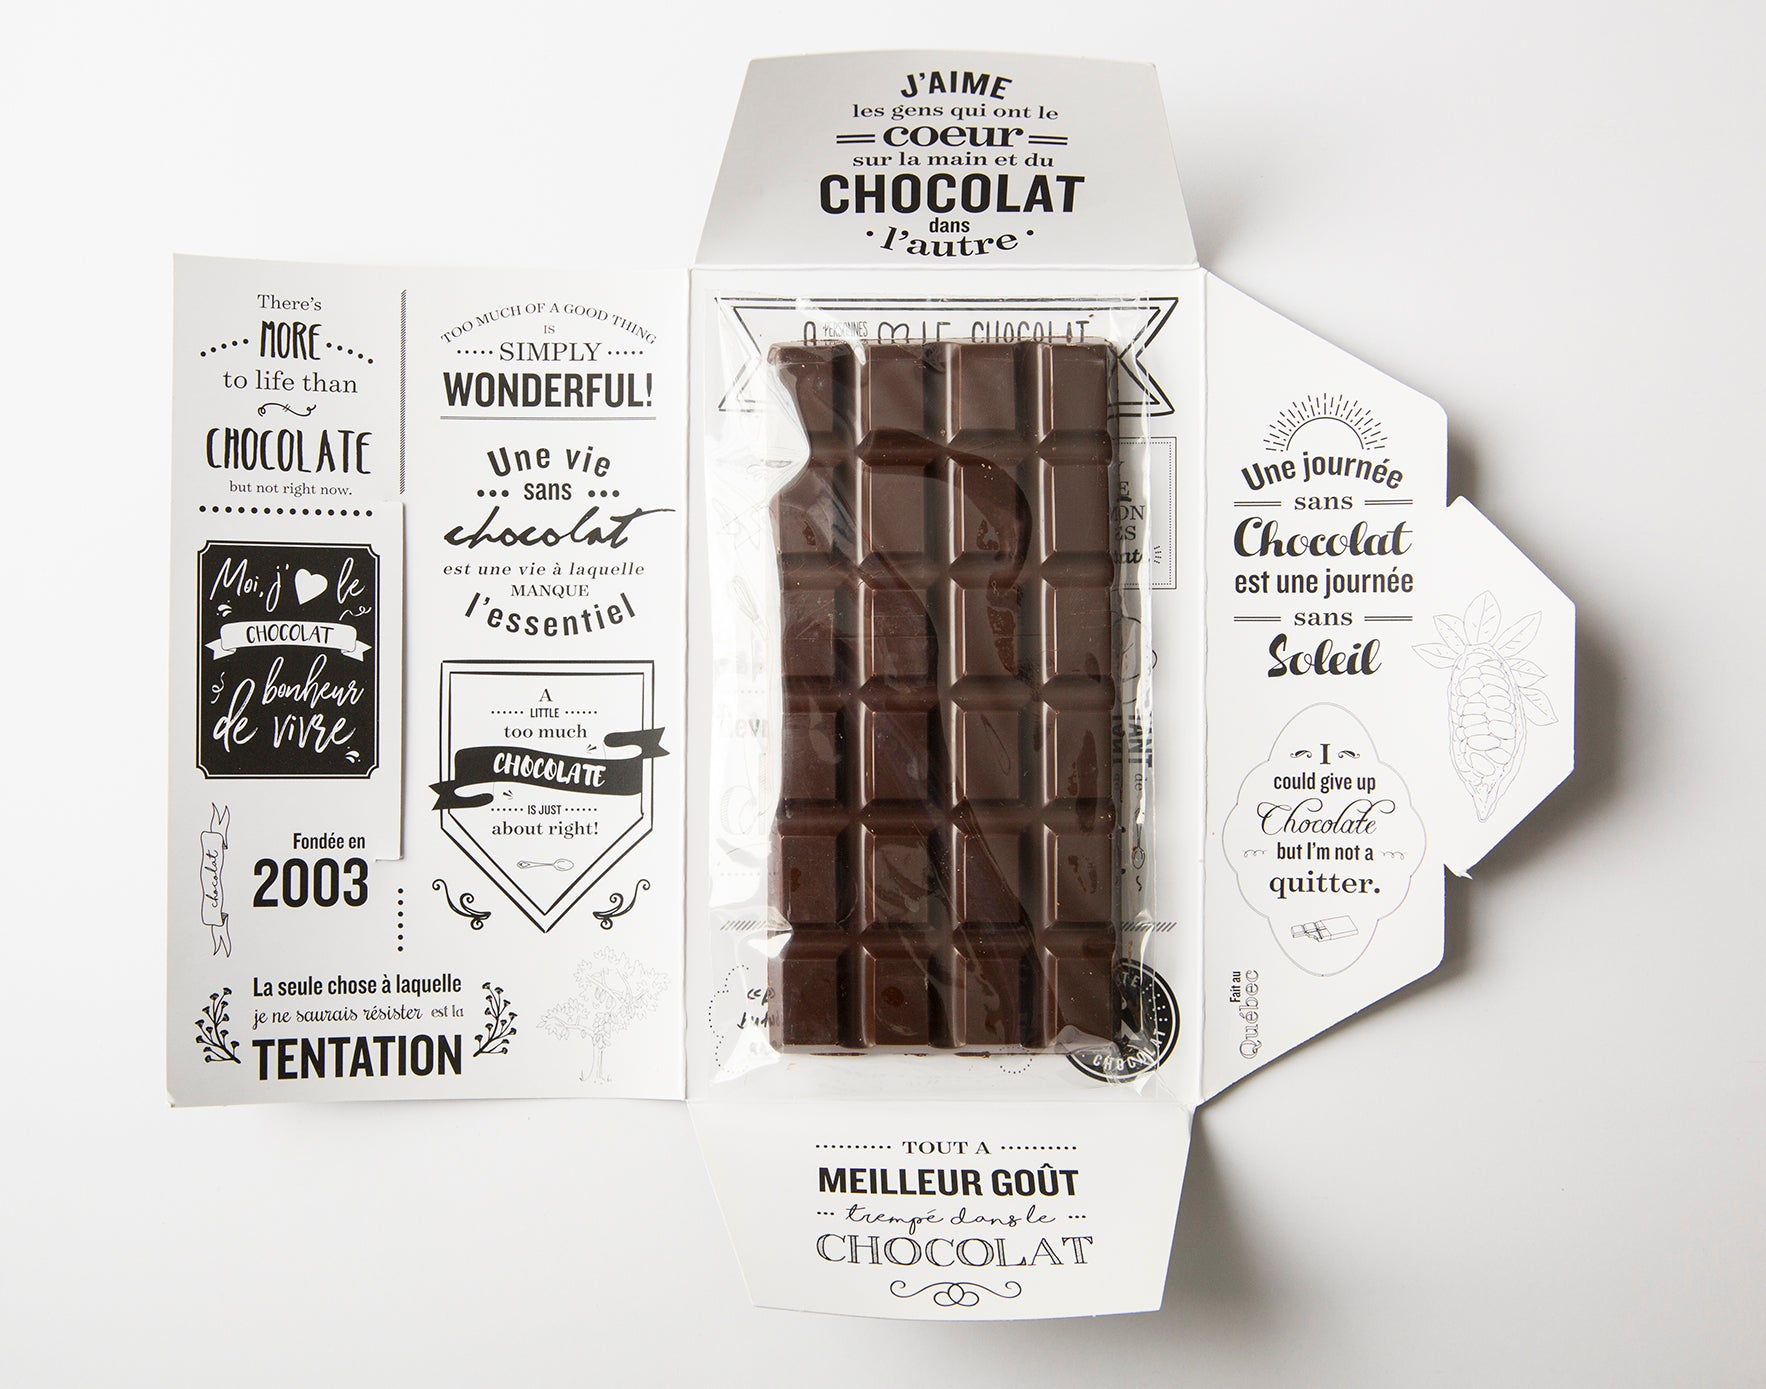 chocolate bars  for Juliette & Chocolat